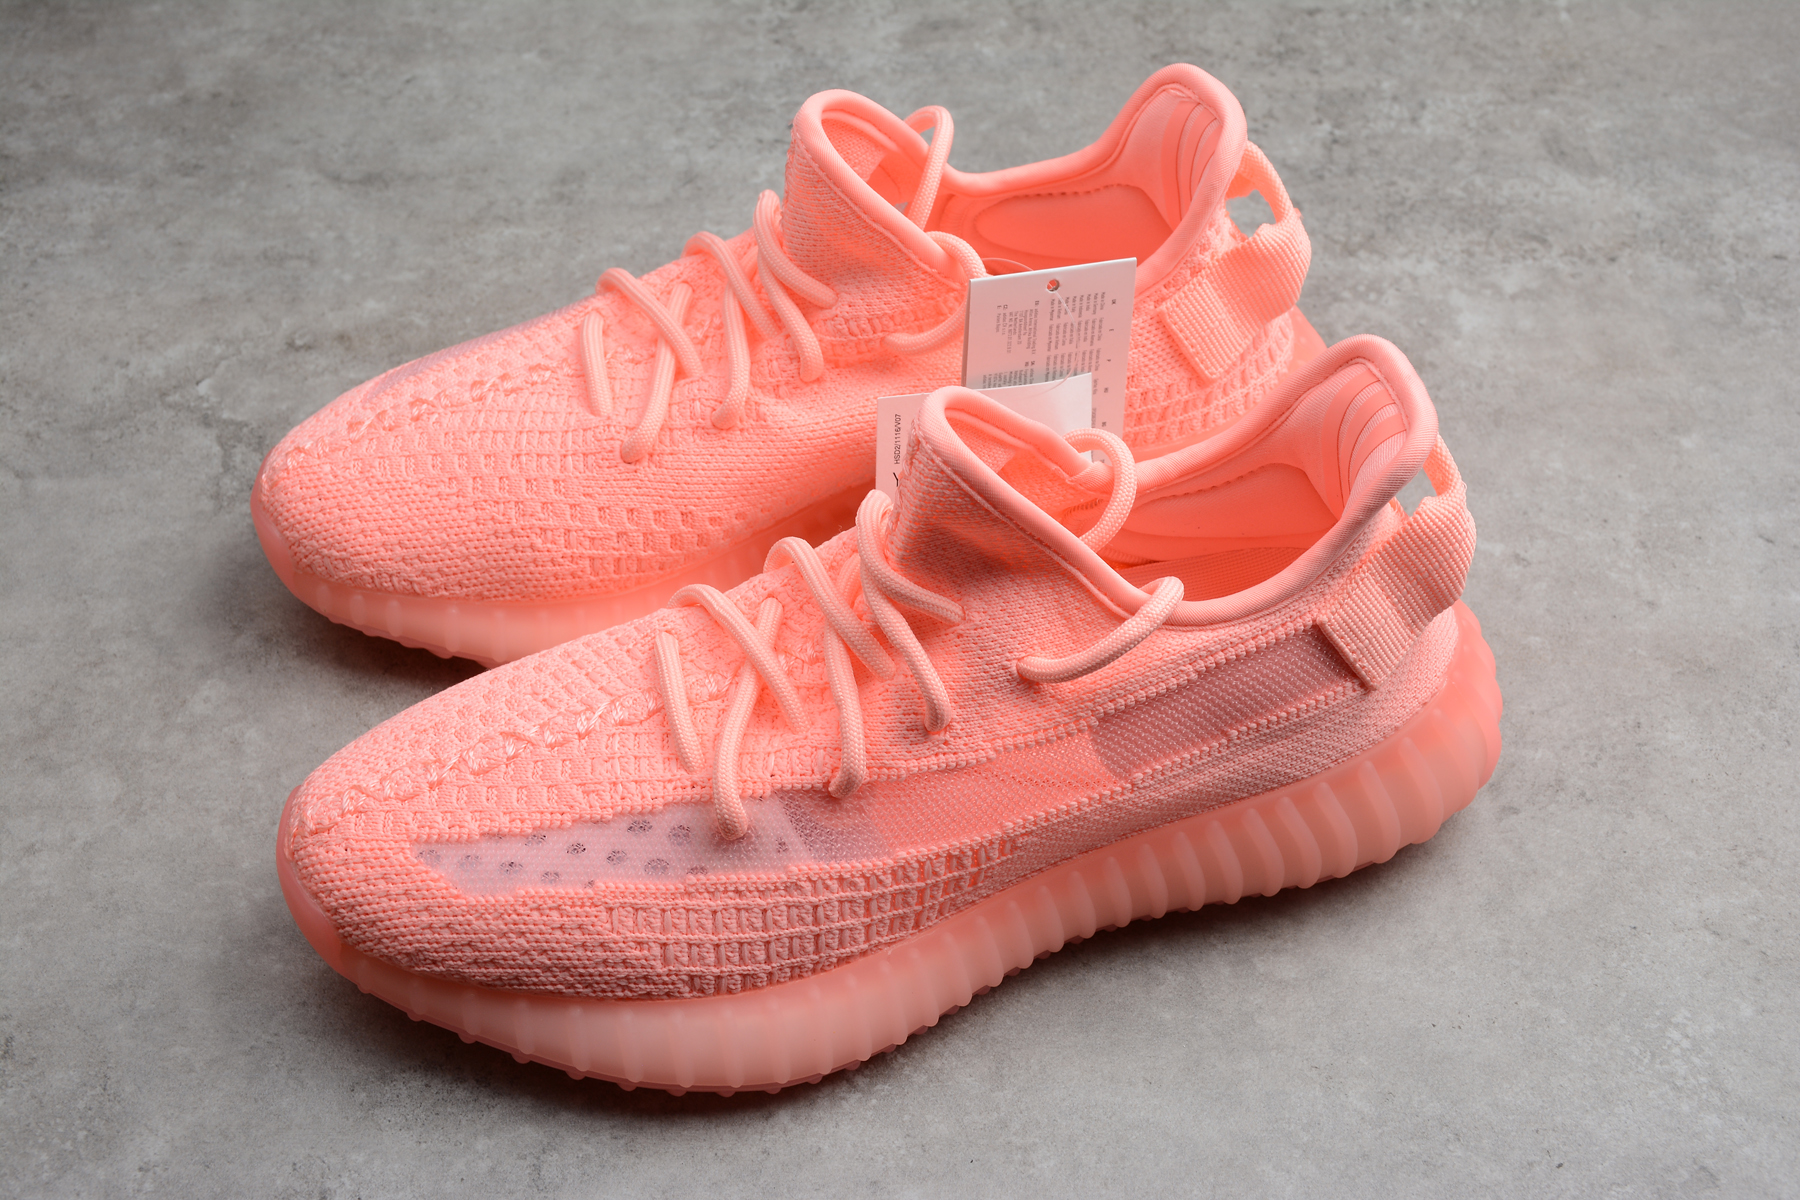 best loved 303fe 32378 Adidas Yeezy Boost 350 V2 Pink Running shoes sold by ivicente